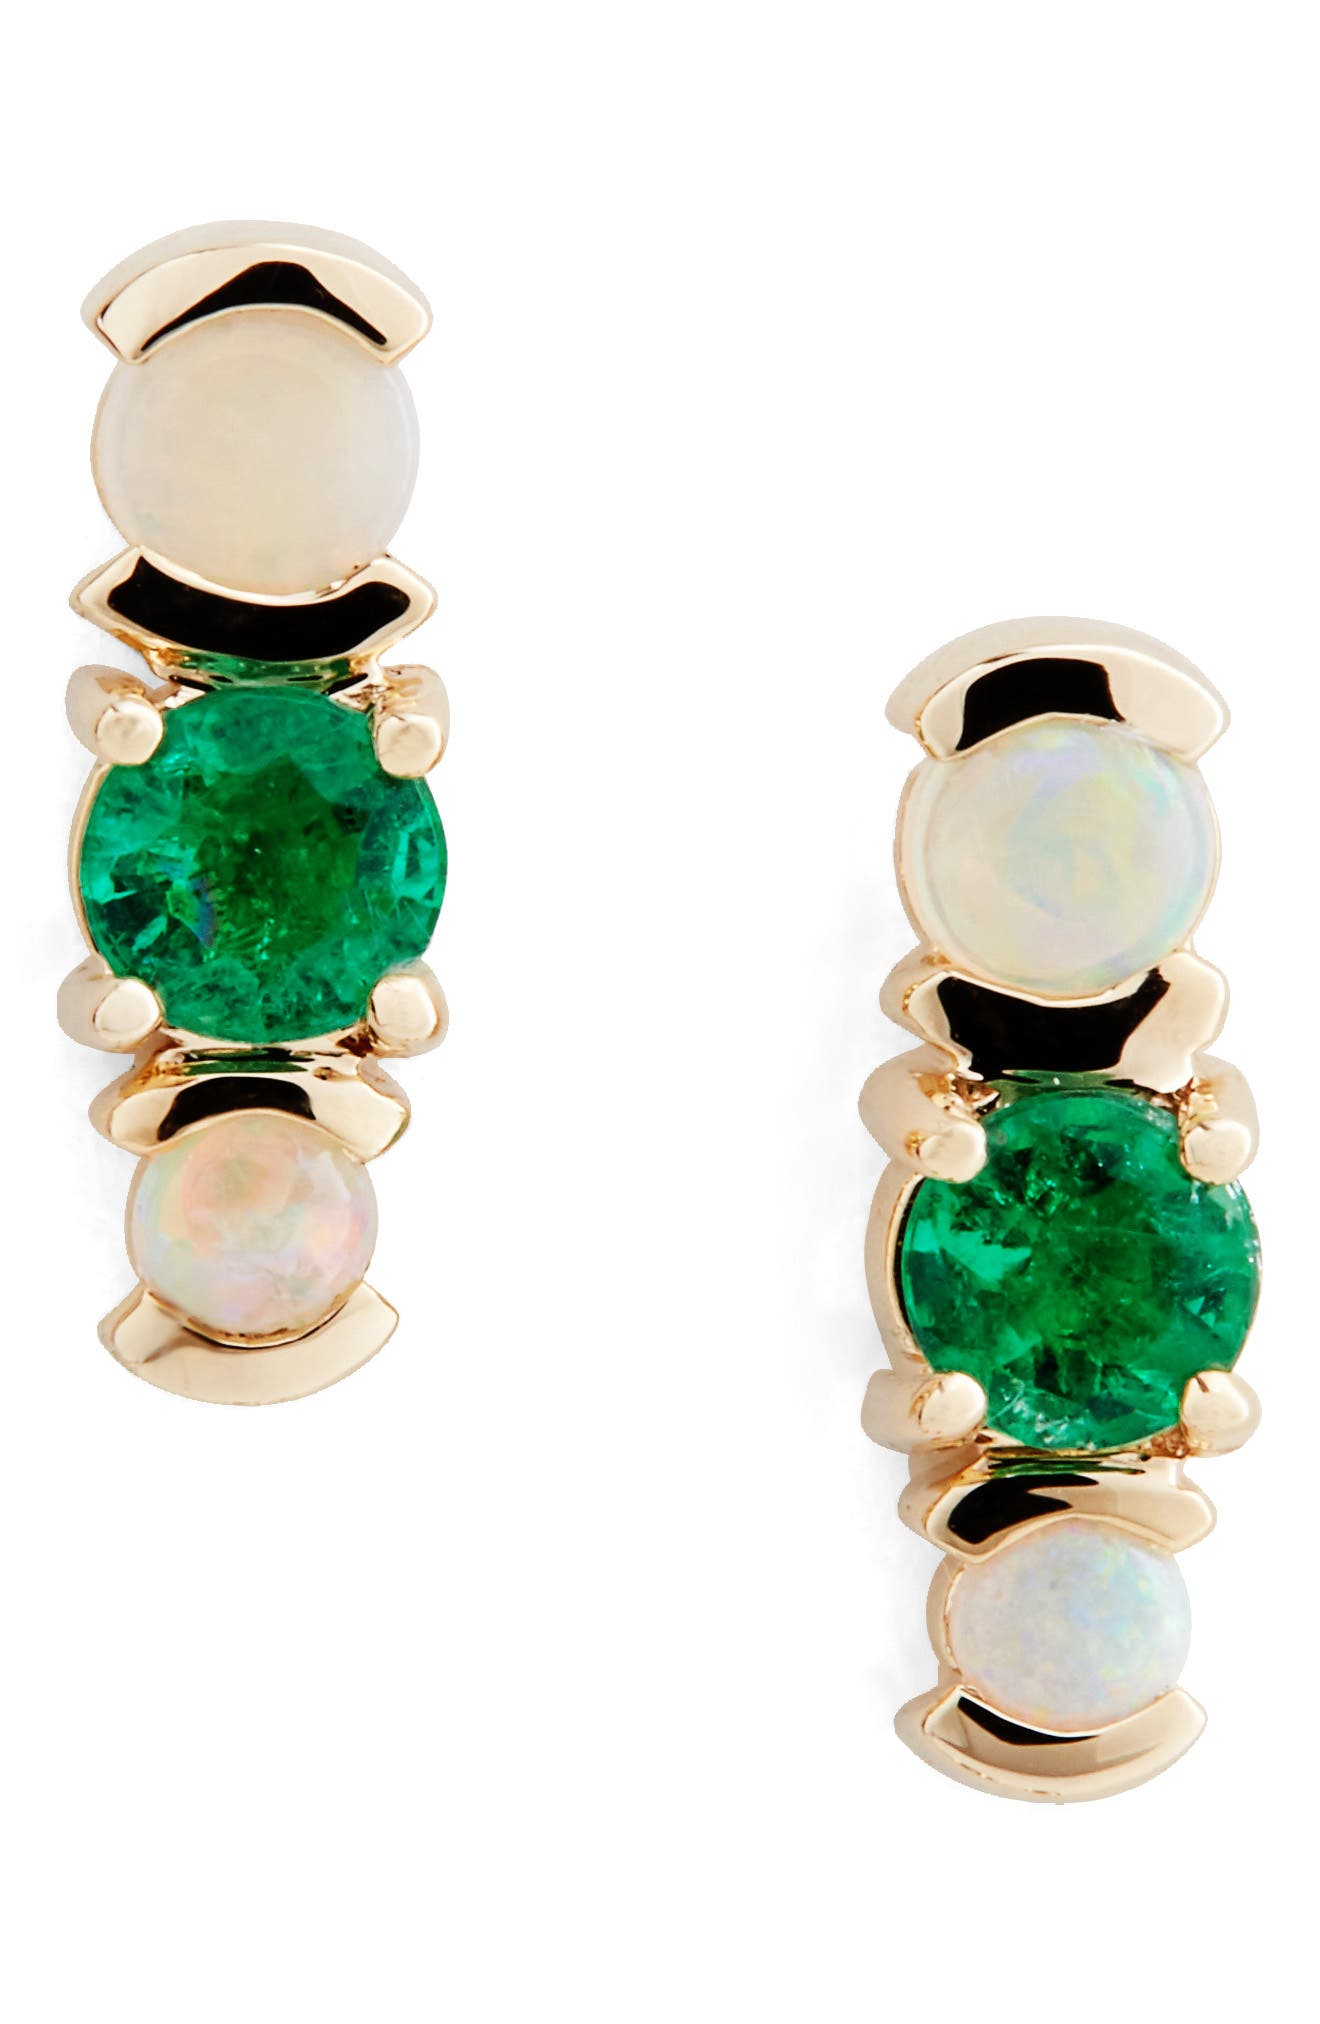 Emerald & Opal Cluster Earrings,                         Main,                         color, Yellow Green